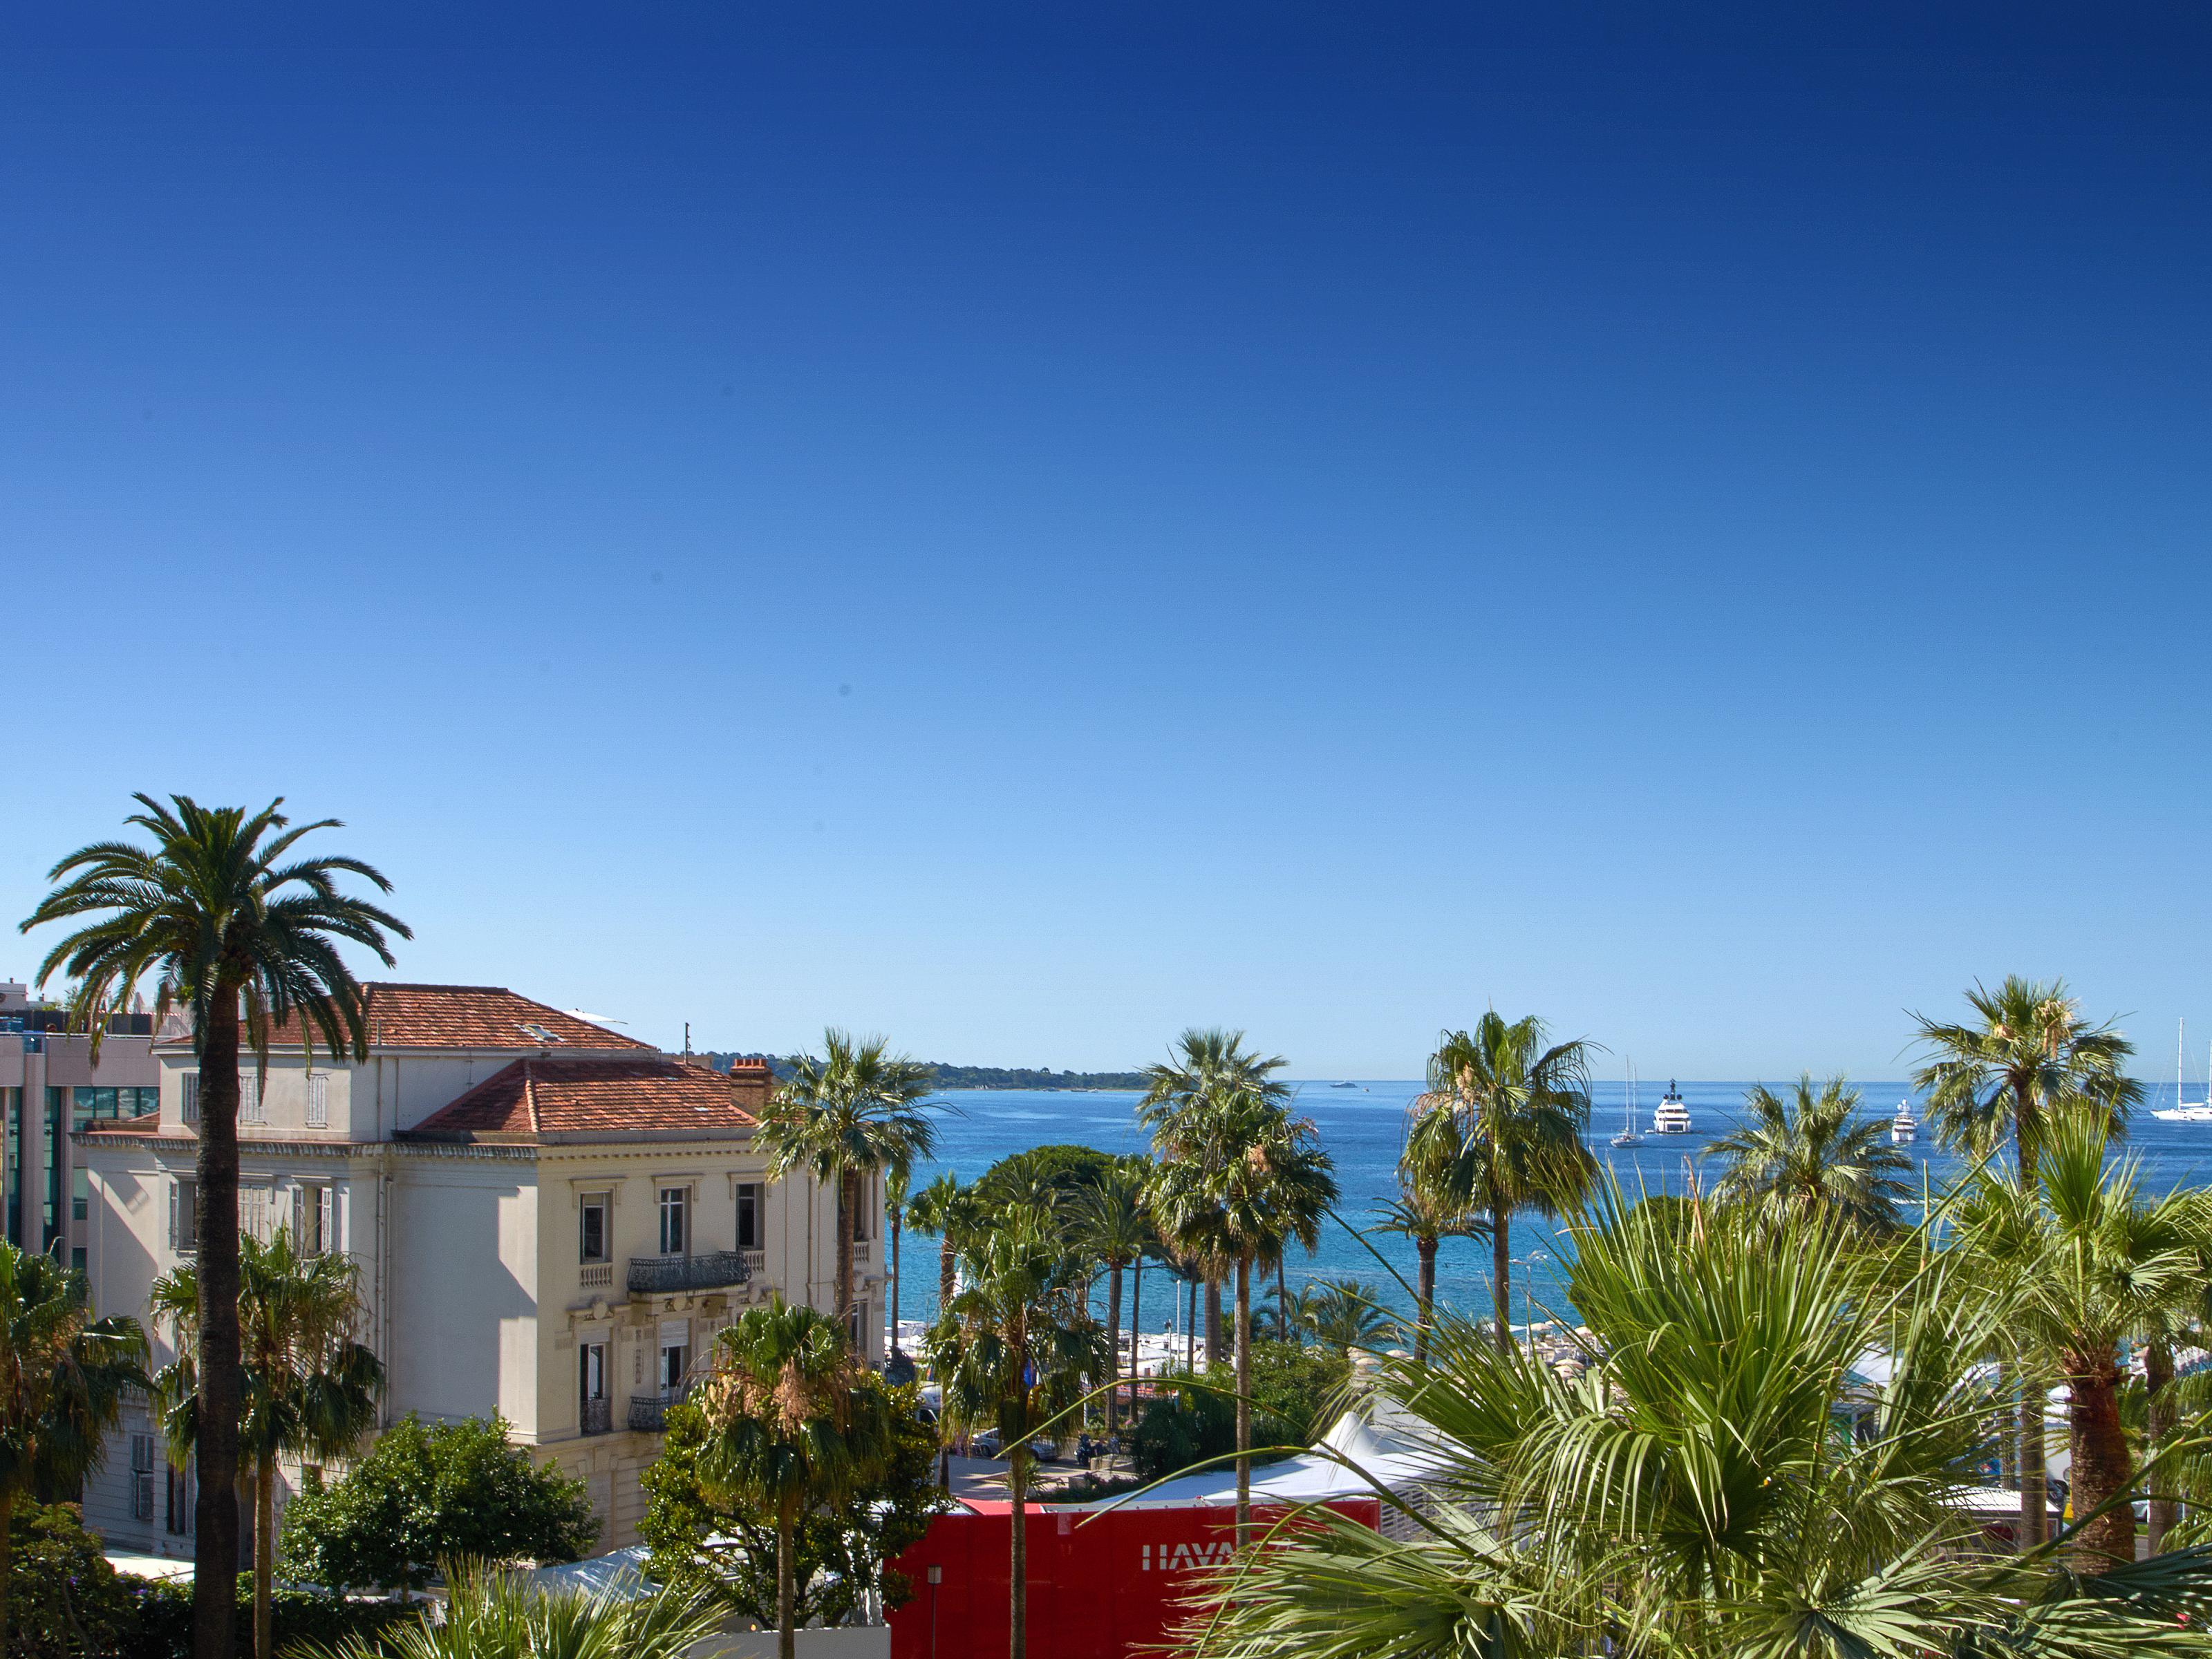 公寓 为 销售 在 In the heart of the Croisette- fully renovated apartment - Panoramic sea view Cannes Cannes, 普罗旺斯阿尔卑斯蓝色海岸 06400 法国